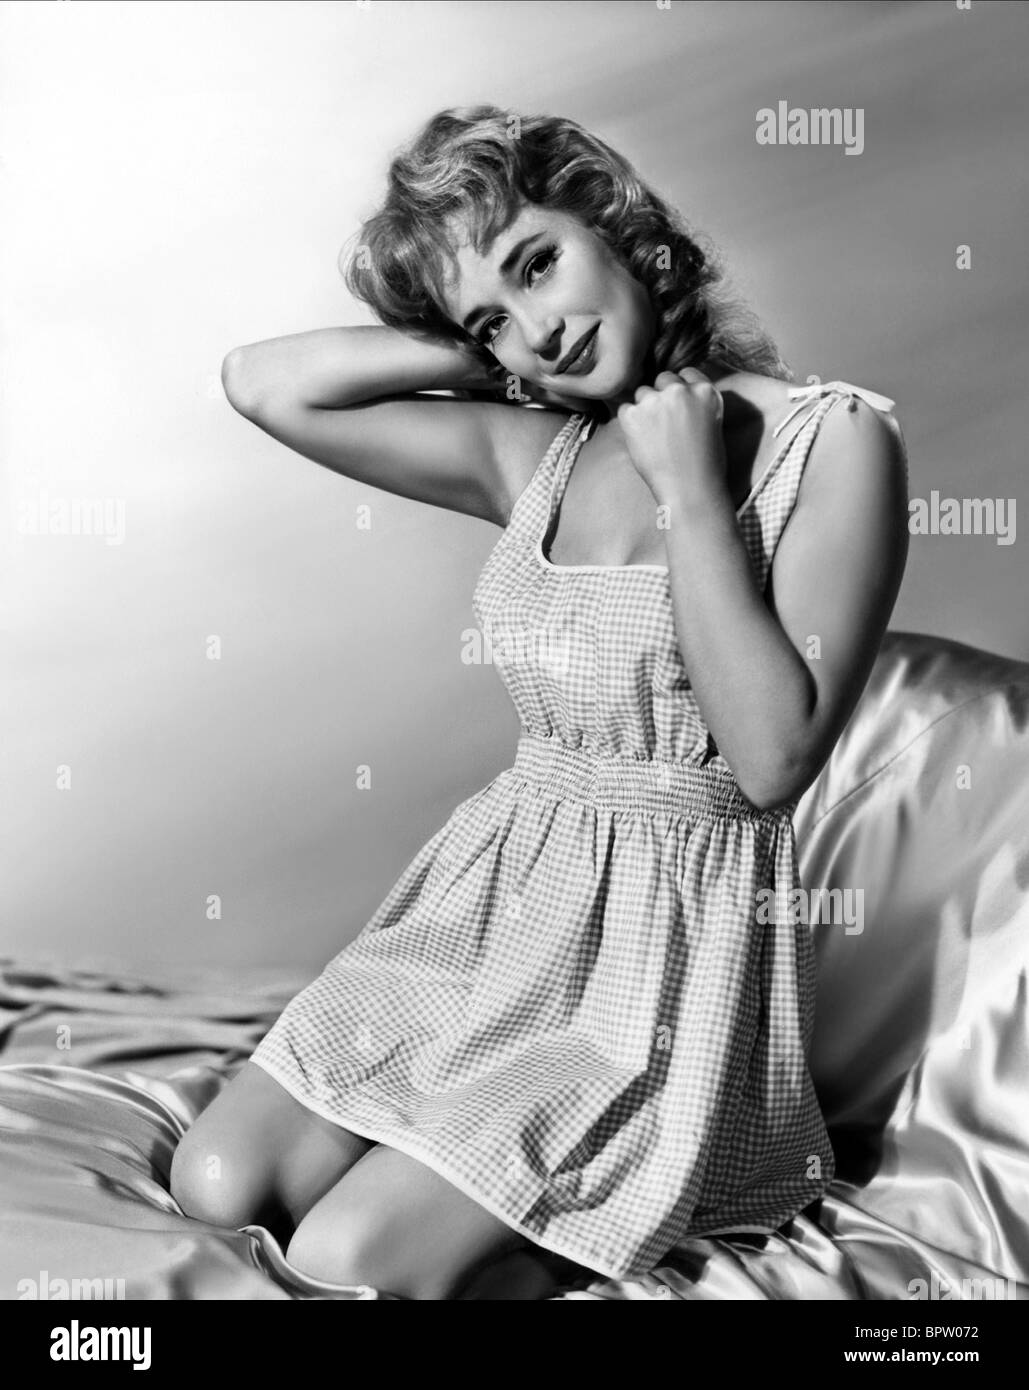 SYLVIA SYMS ACTRESS (1959) - Stock Image